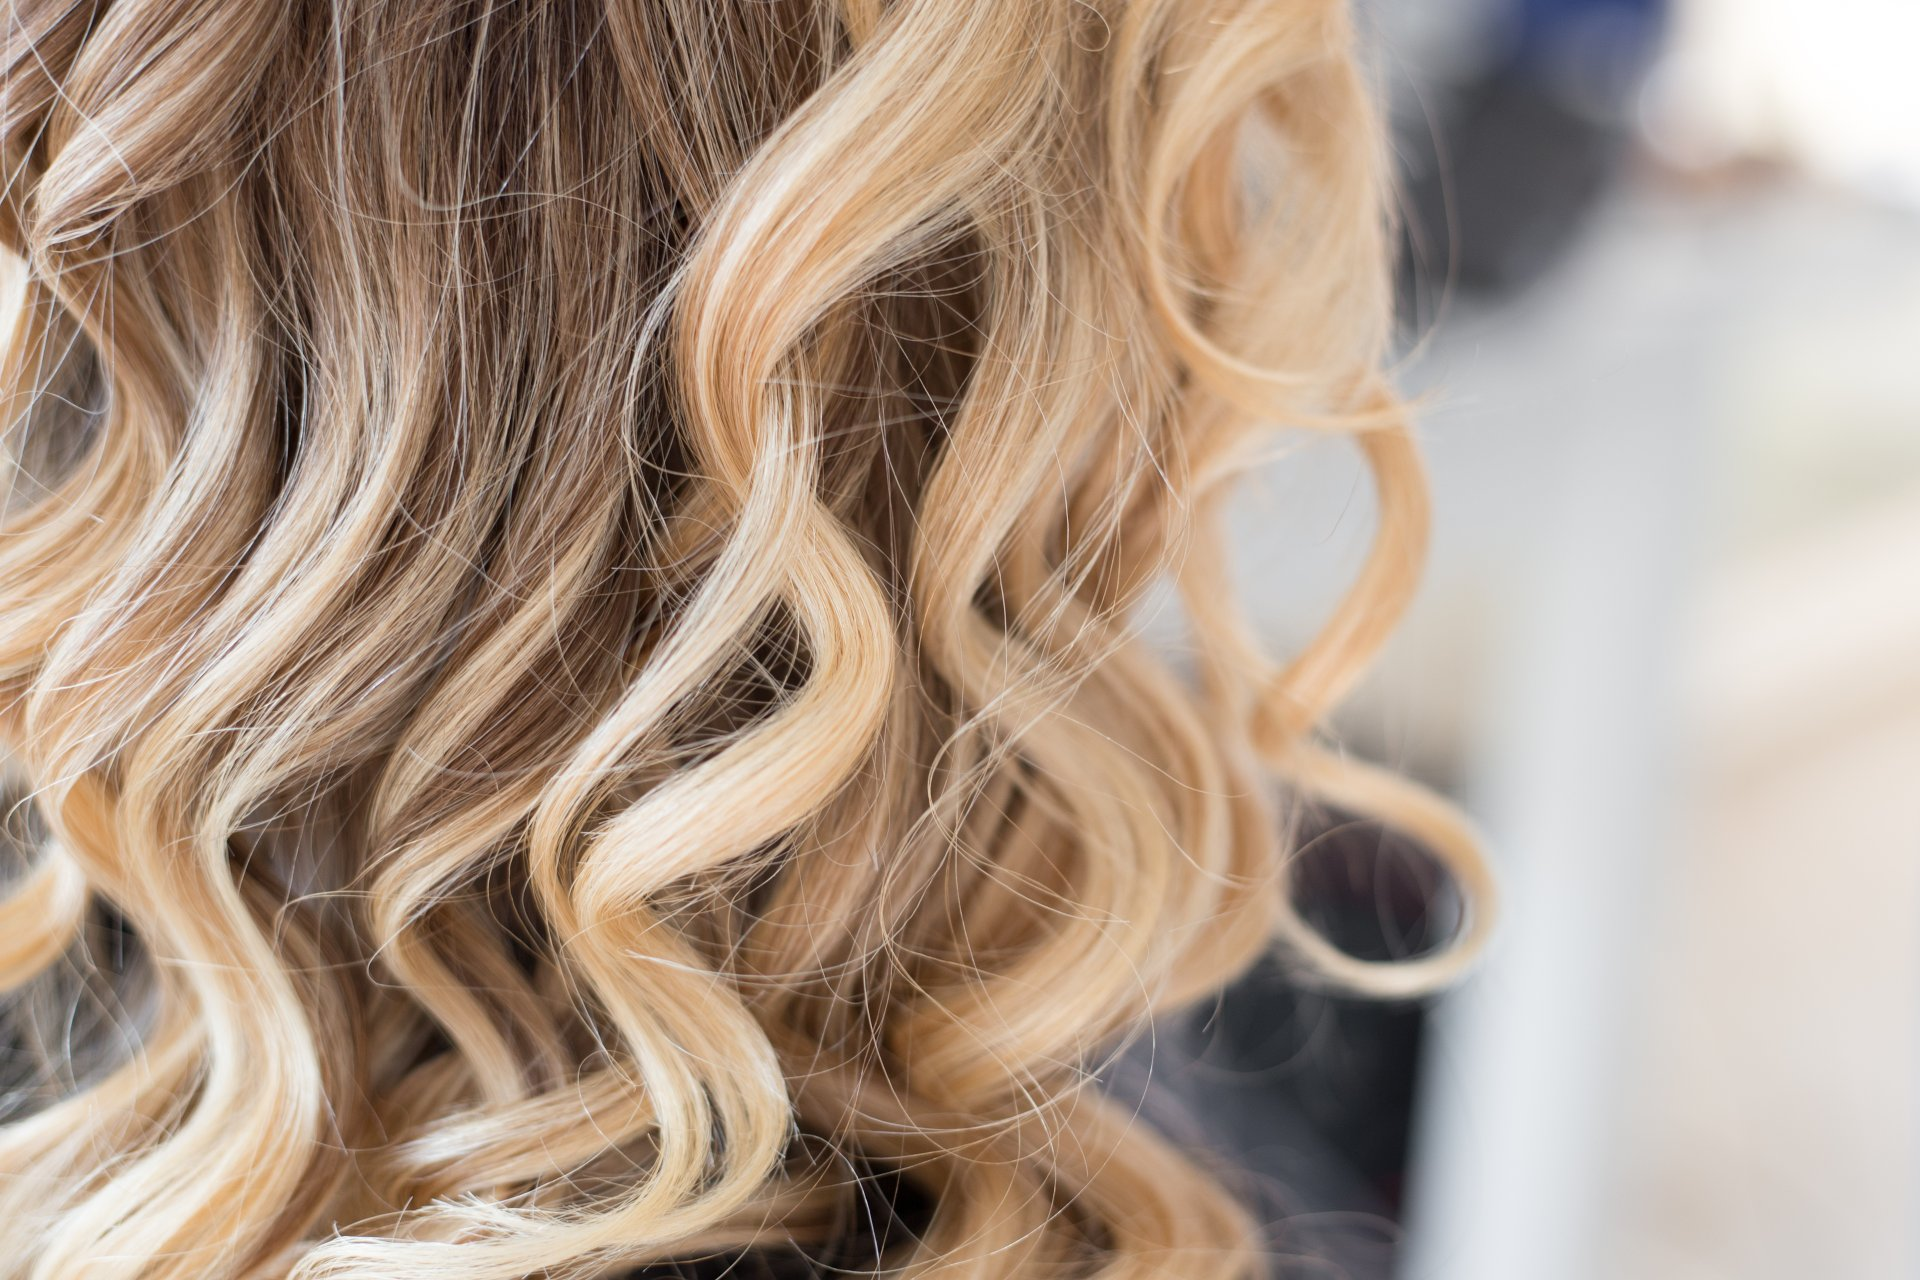 Lady with curly blonde highlighted hair